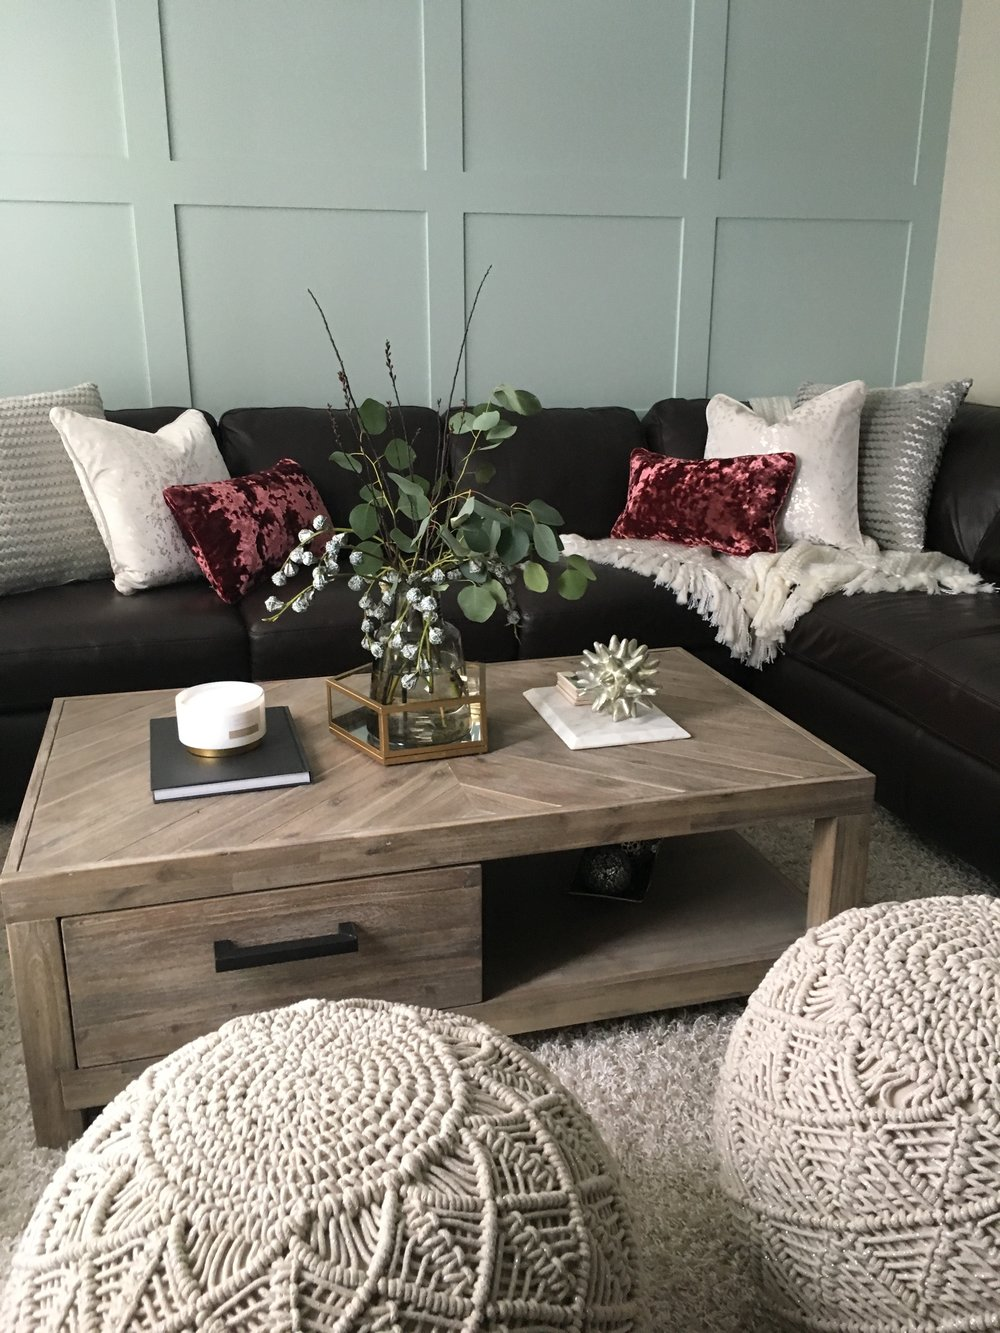 [SOFA: EXISTING, POUFS: HOMESENSE, COFFEE TABLE: URBAN BARN, ACCESSORIES: HOMESENSE, RUG: EXISTING]